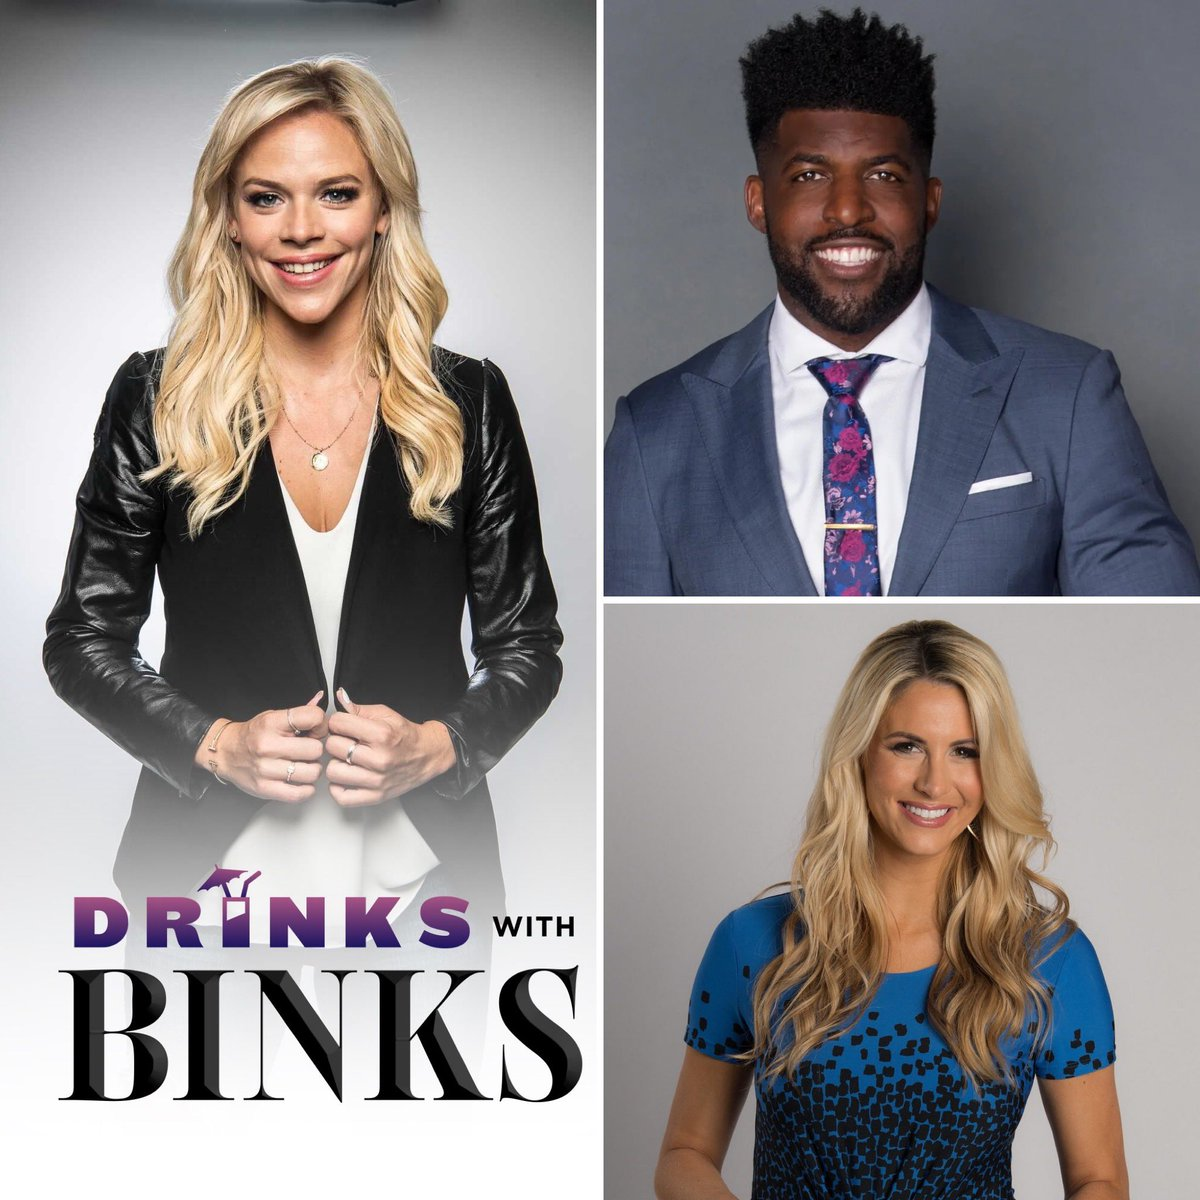 Football junkies you don't want to miss this double shot of #DrinkswithBinks 🍾 thrilled to chat with two of the biggest rising ⭐️ in broadcasting. First up - FS1's @EmmanuelAcho, followed by ESPN's @LauraRutledge - bottoms up at 8pm ET on @fuboTV @fuboSports